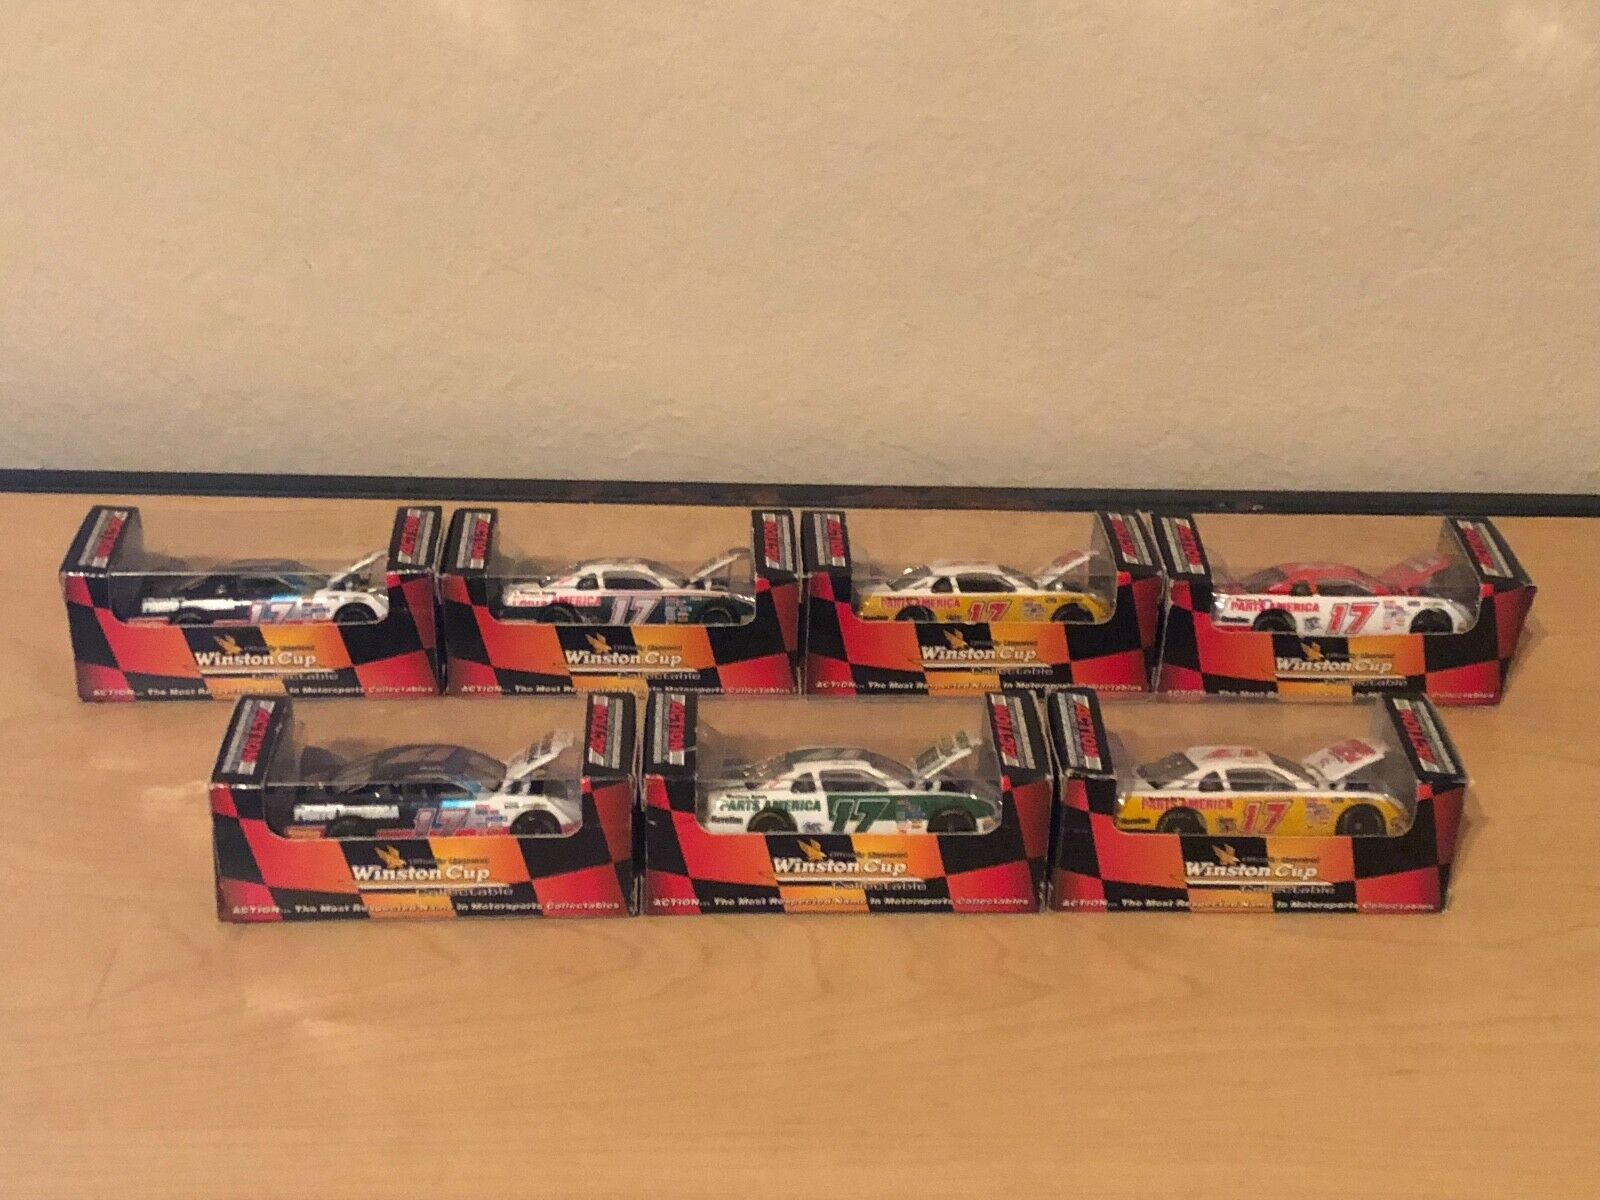 Darrell Waltrip 1 64 Scale Diecast 7 Car Career Set - Action Racing Collectables